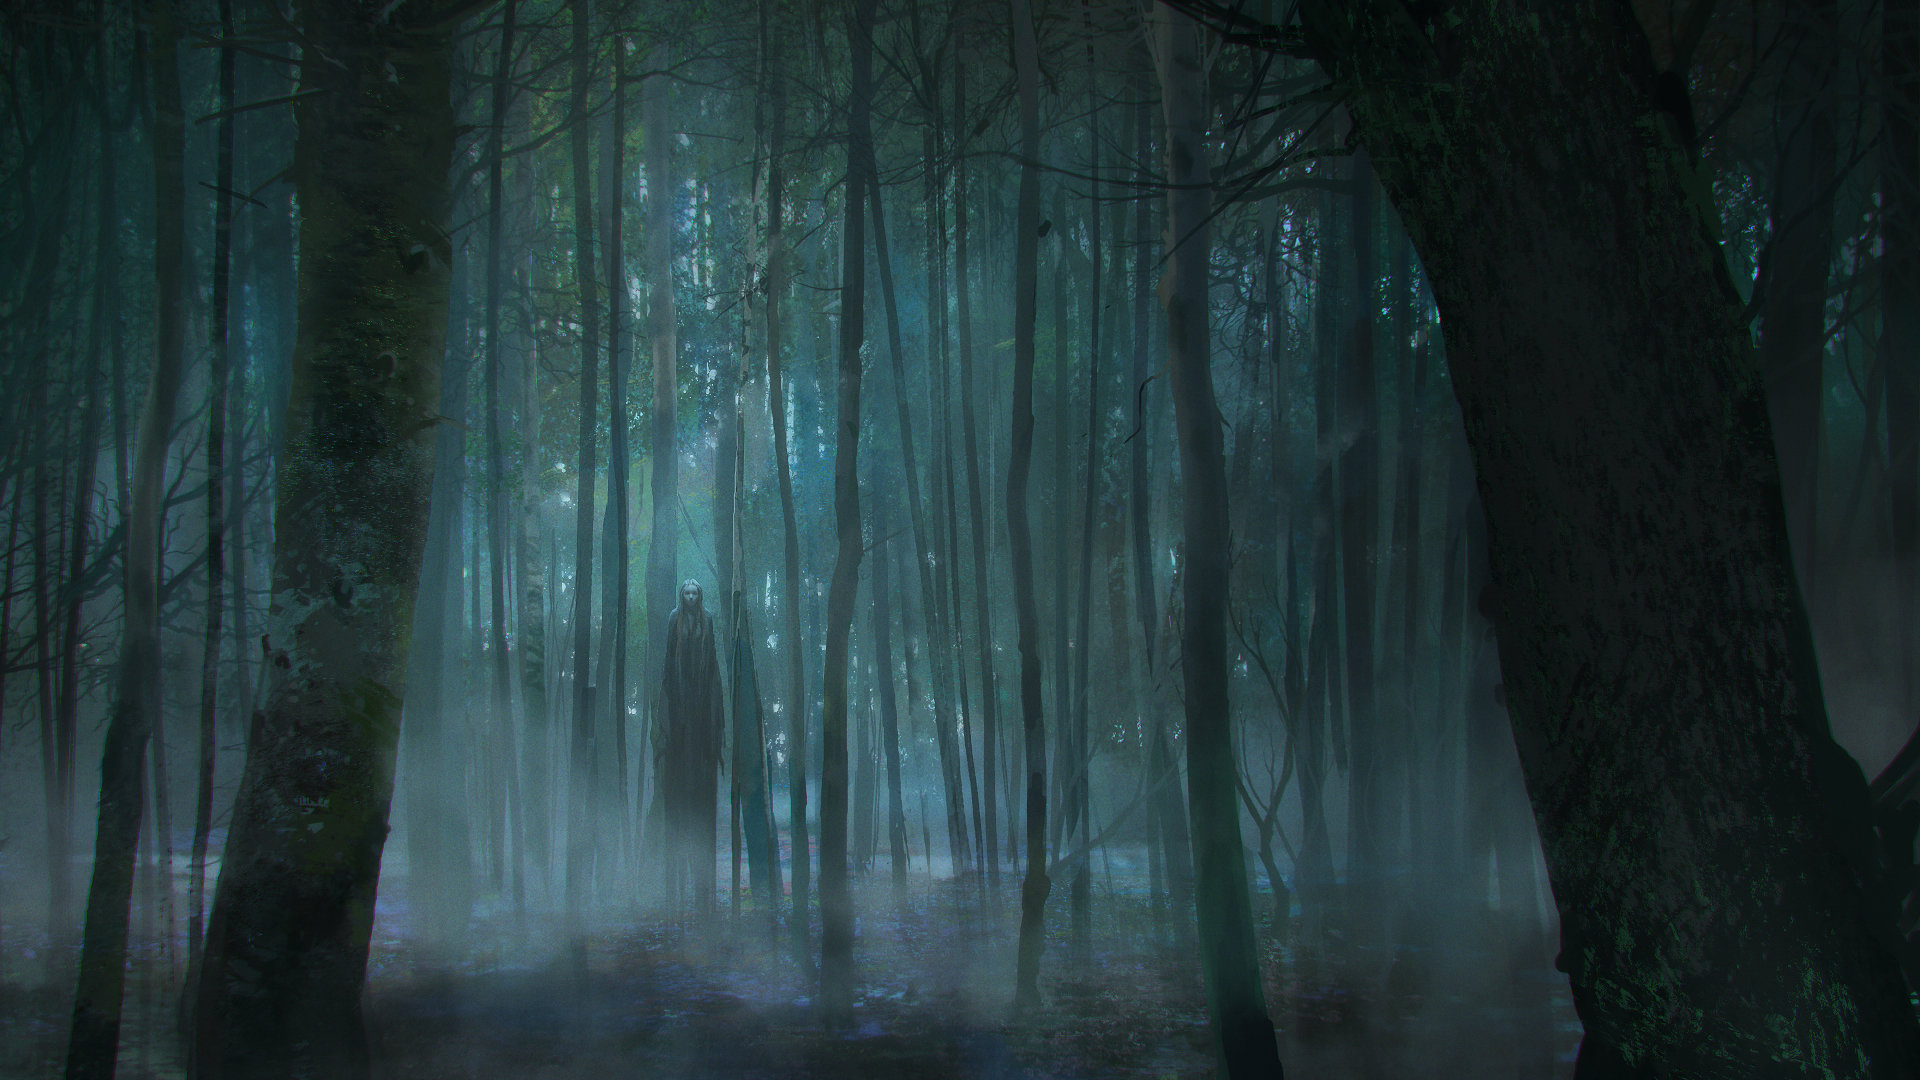 Viktor Titov | Concept Art World Anime Forest Clearing Background